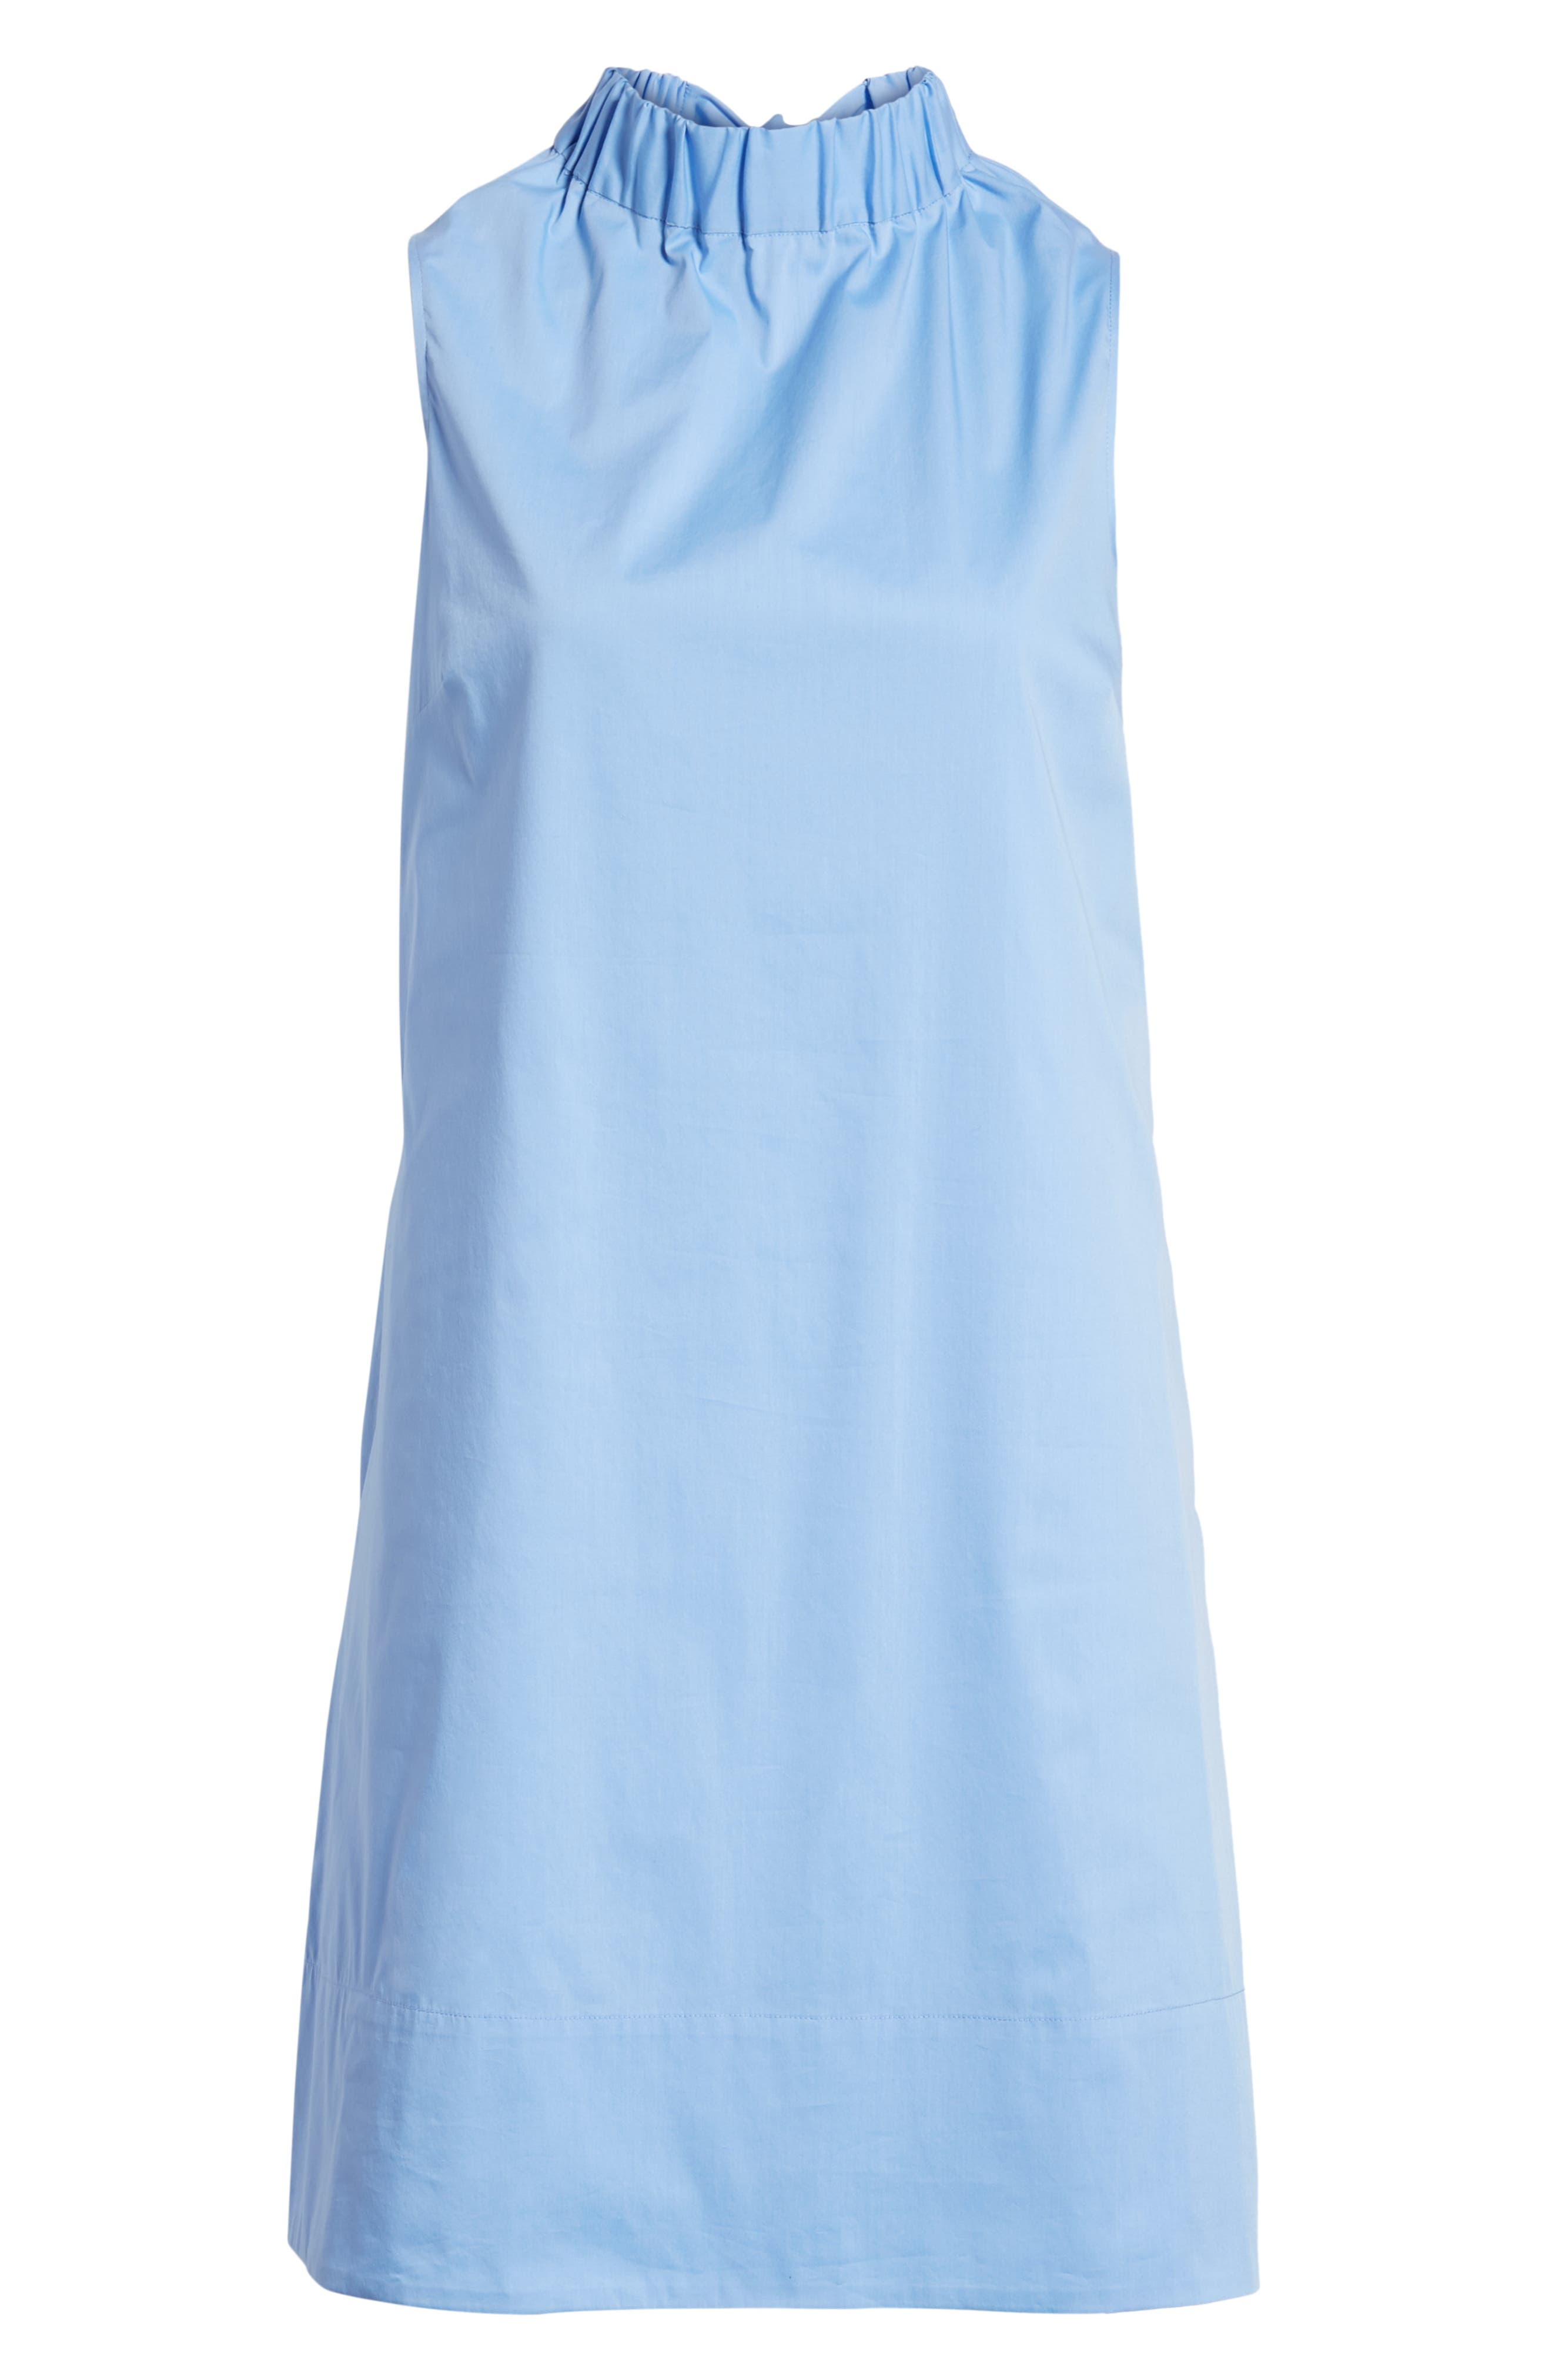 Stretch Cotton Poplin Shift Dress,                             Alternate thumbnail 7, color,                             Blue Cornflower